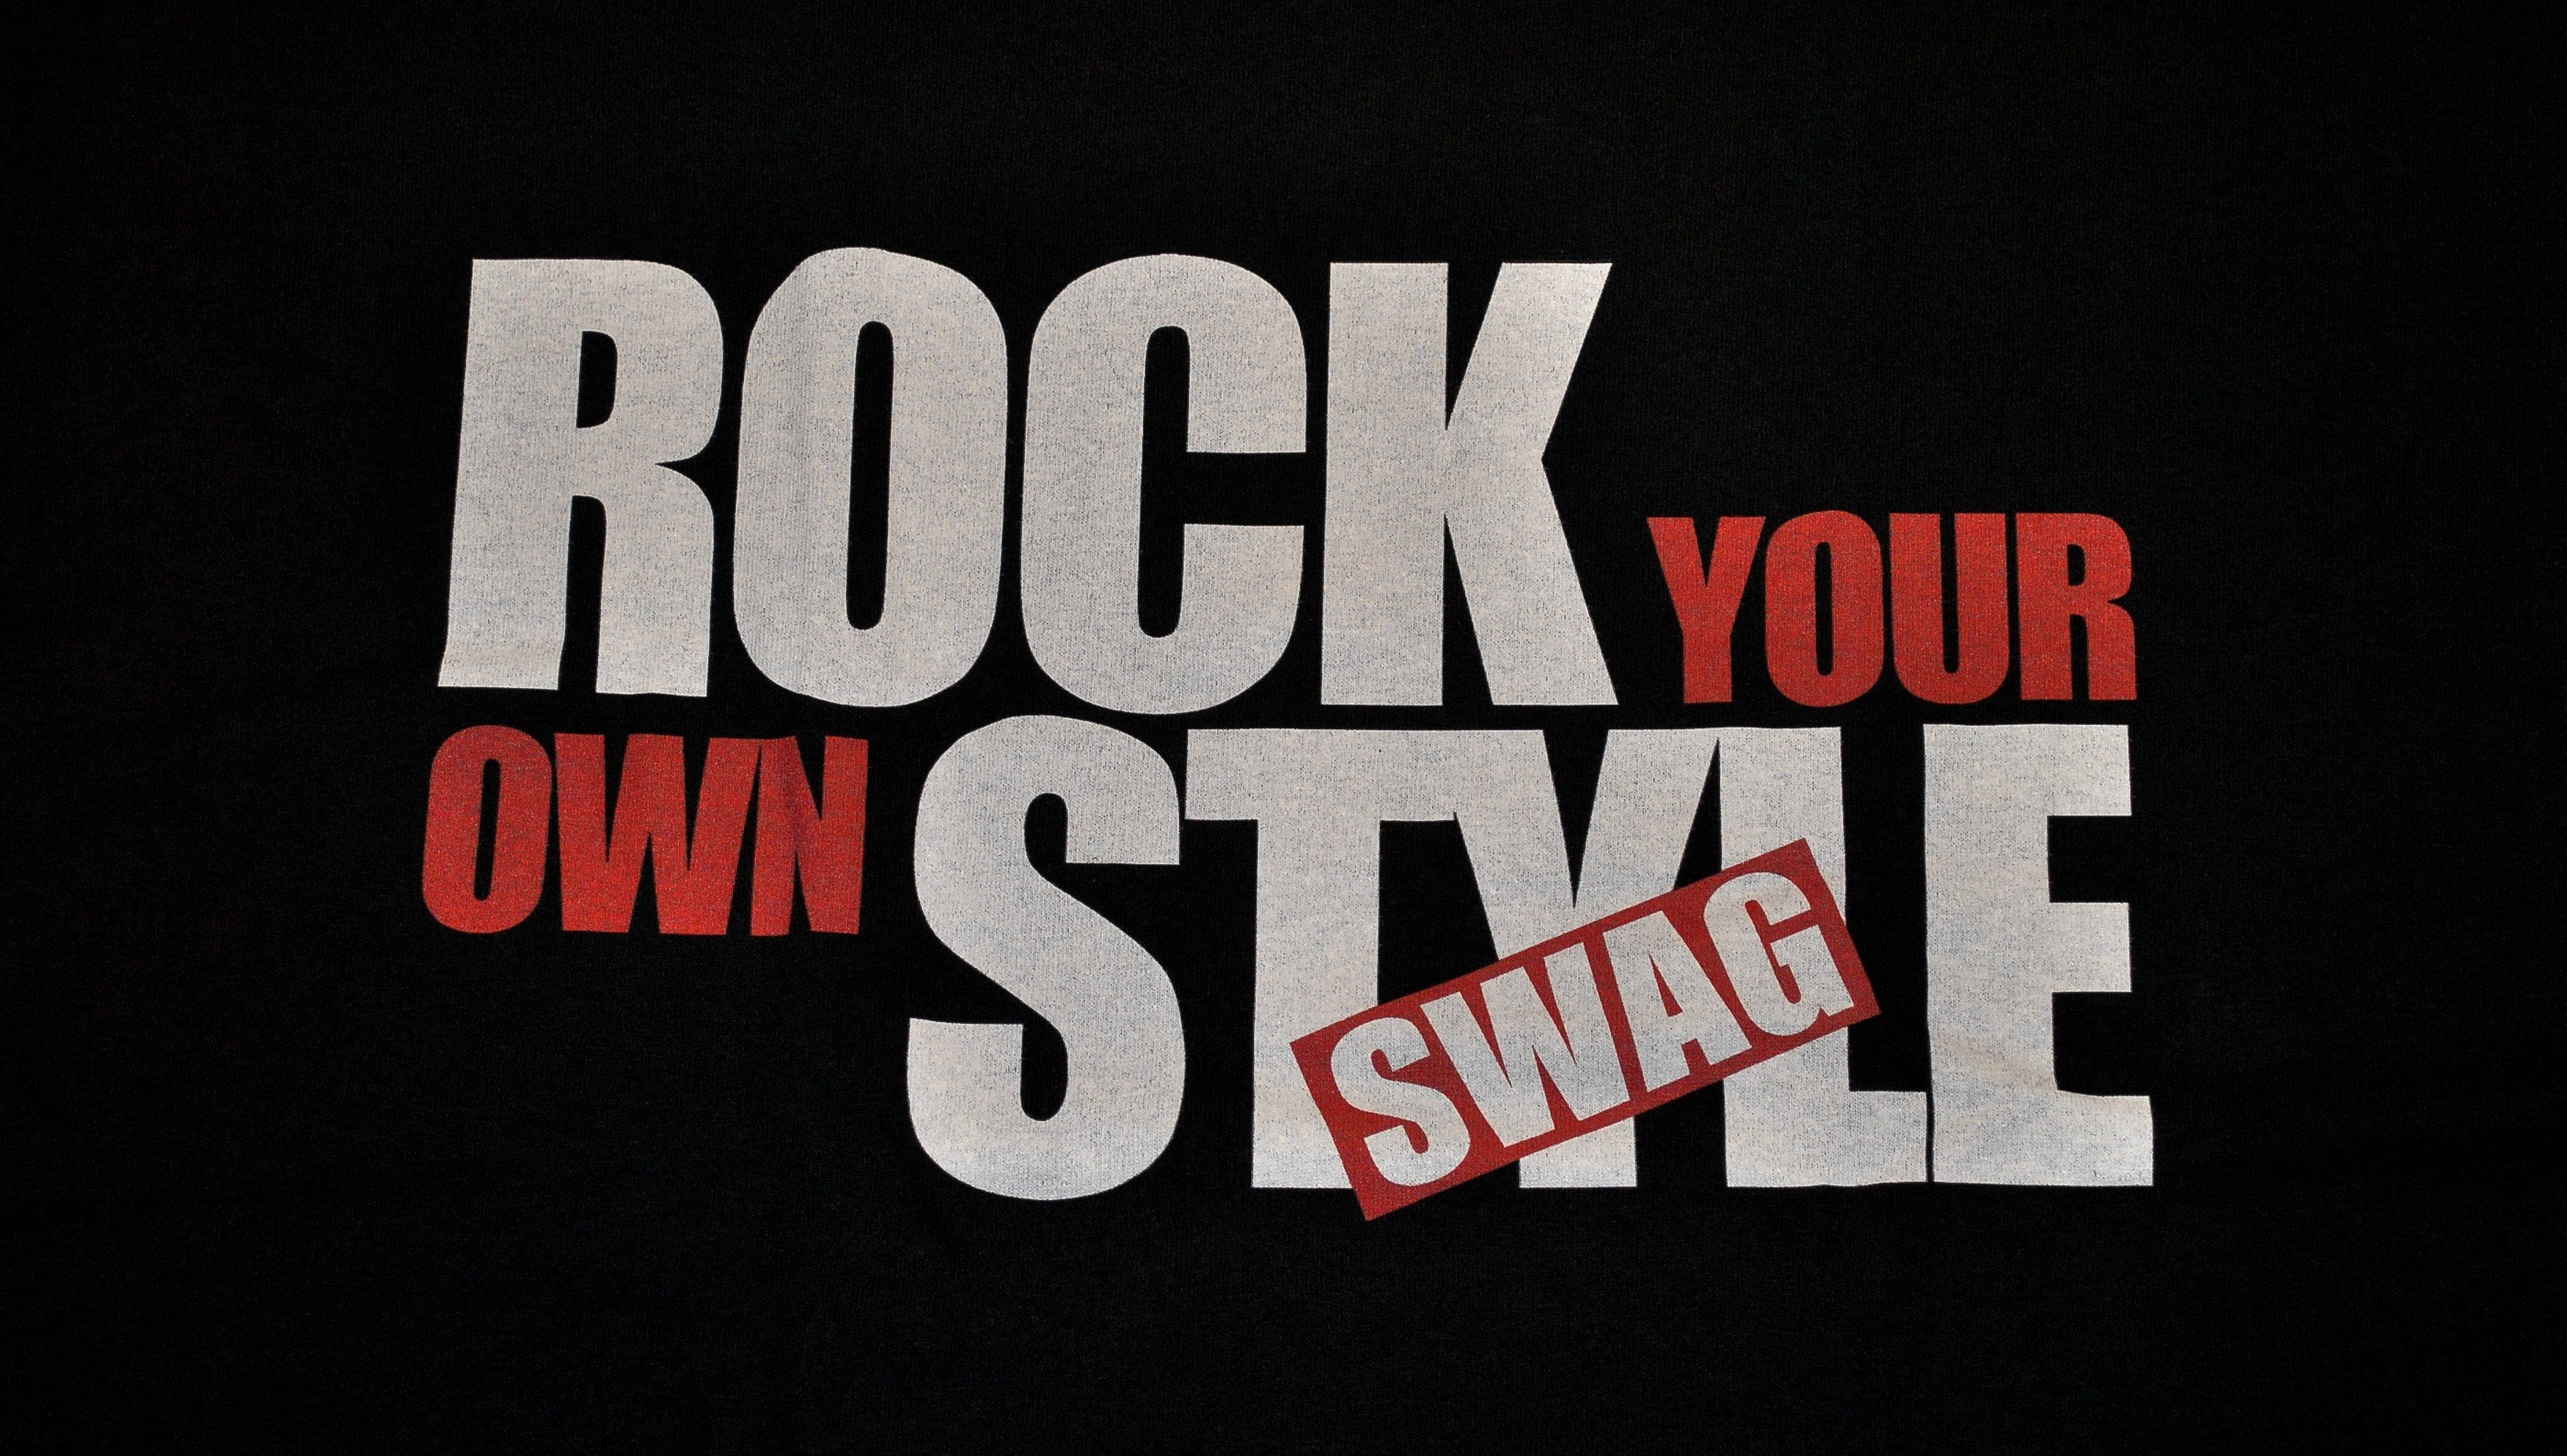 Yolo Swag Wallpaper Hd 64 Images